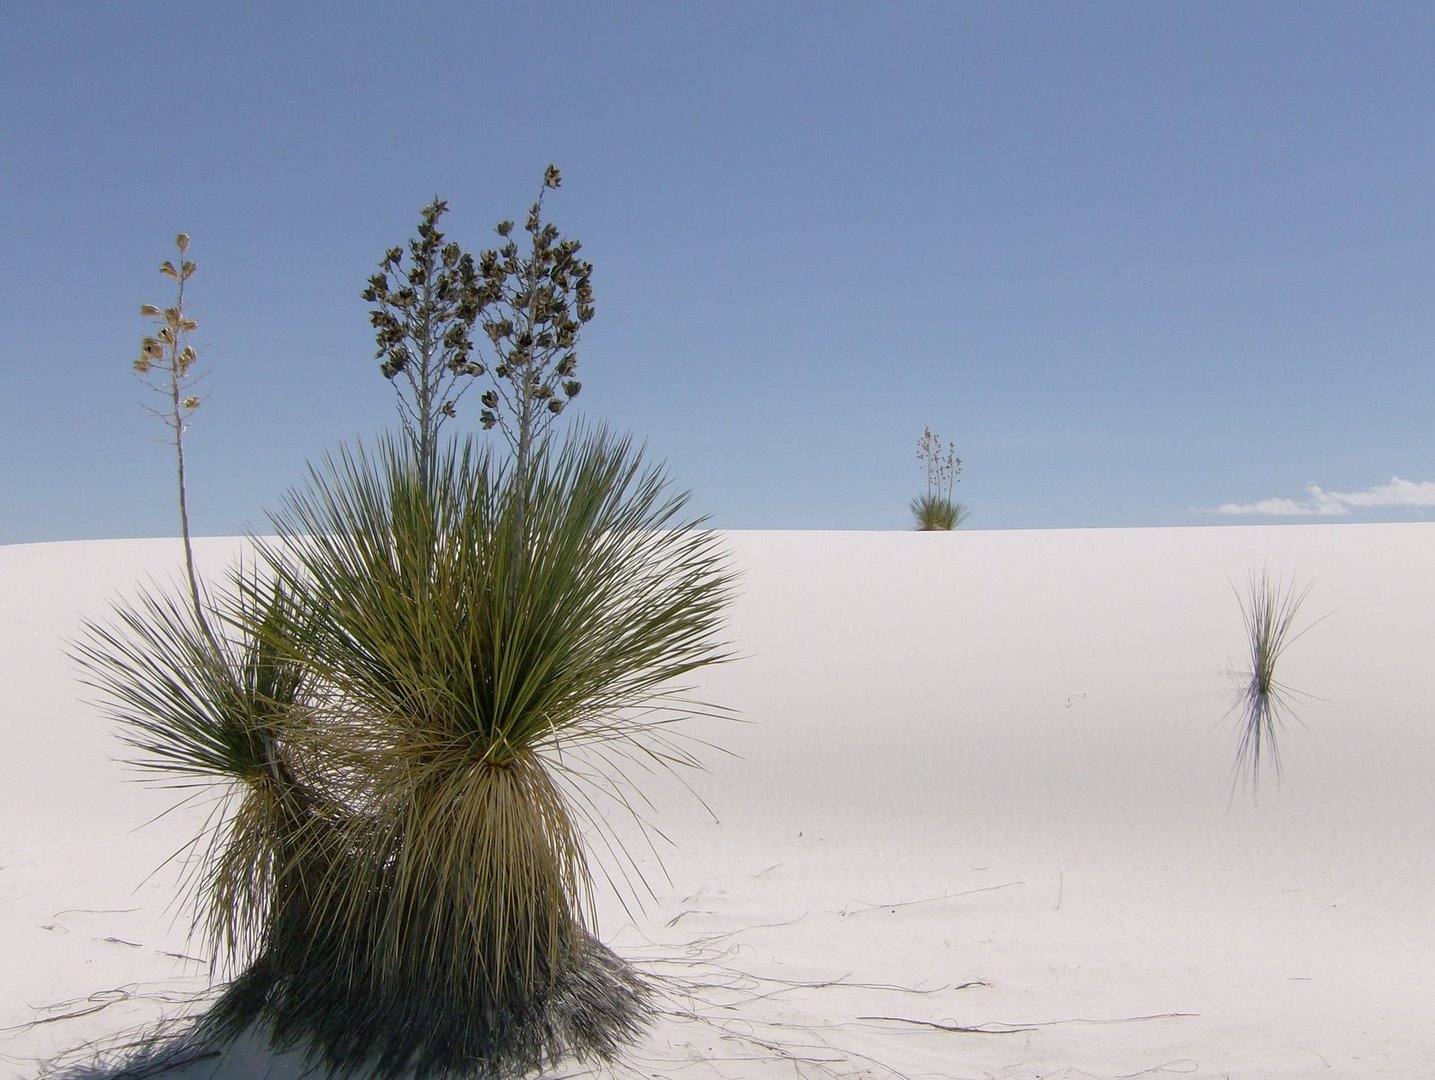 Yuccas in White Sands